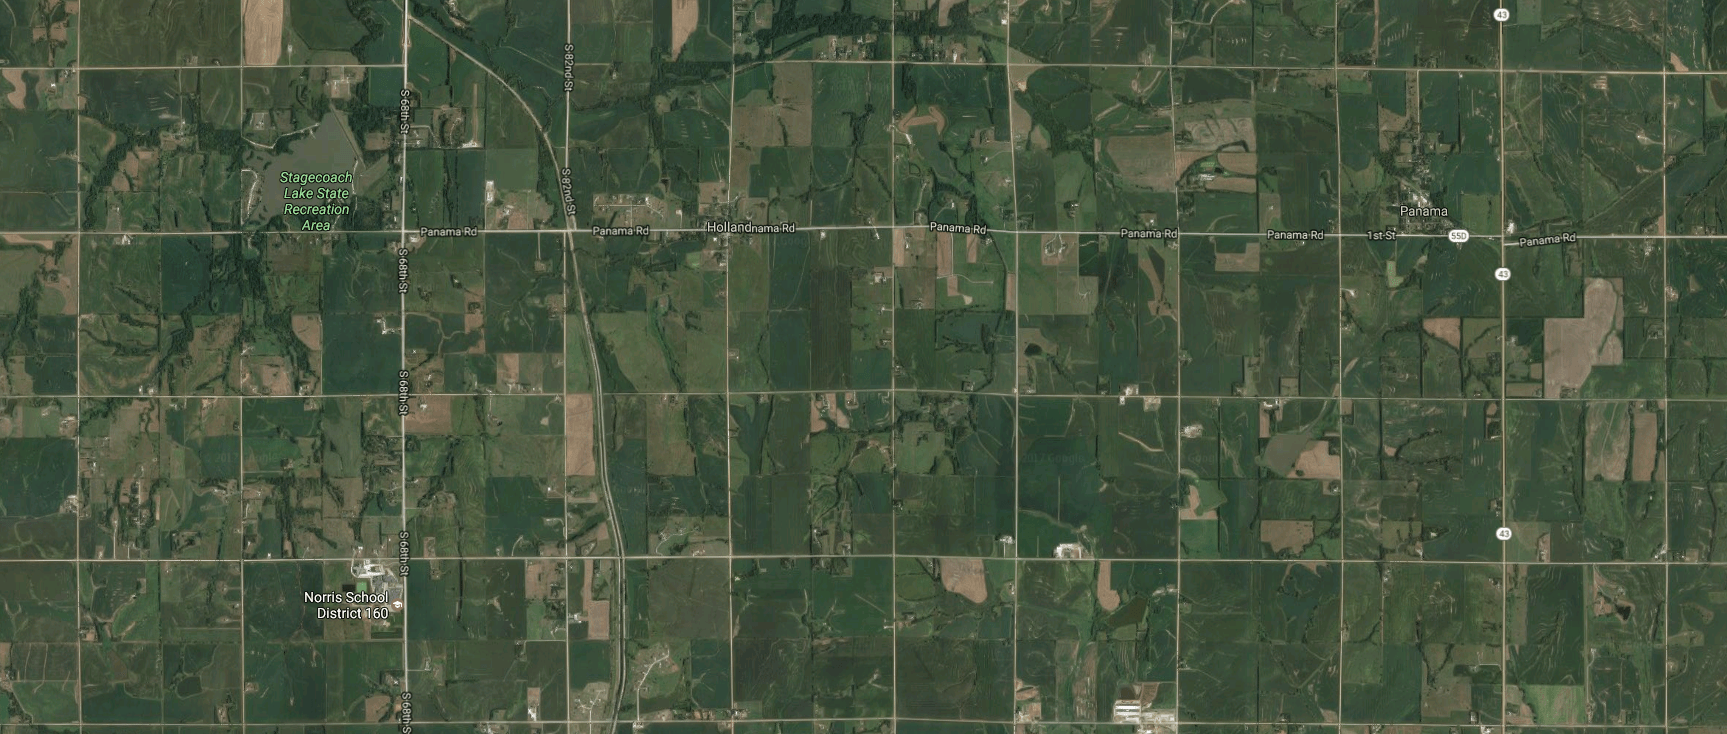 Google map view of the area of Penry's dig site in Lancaster County, NE.